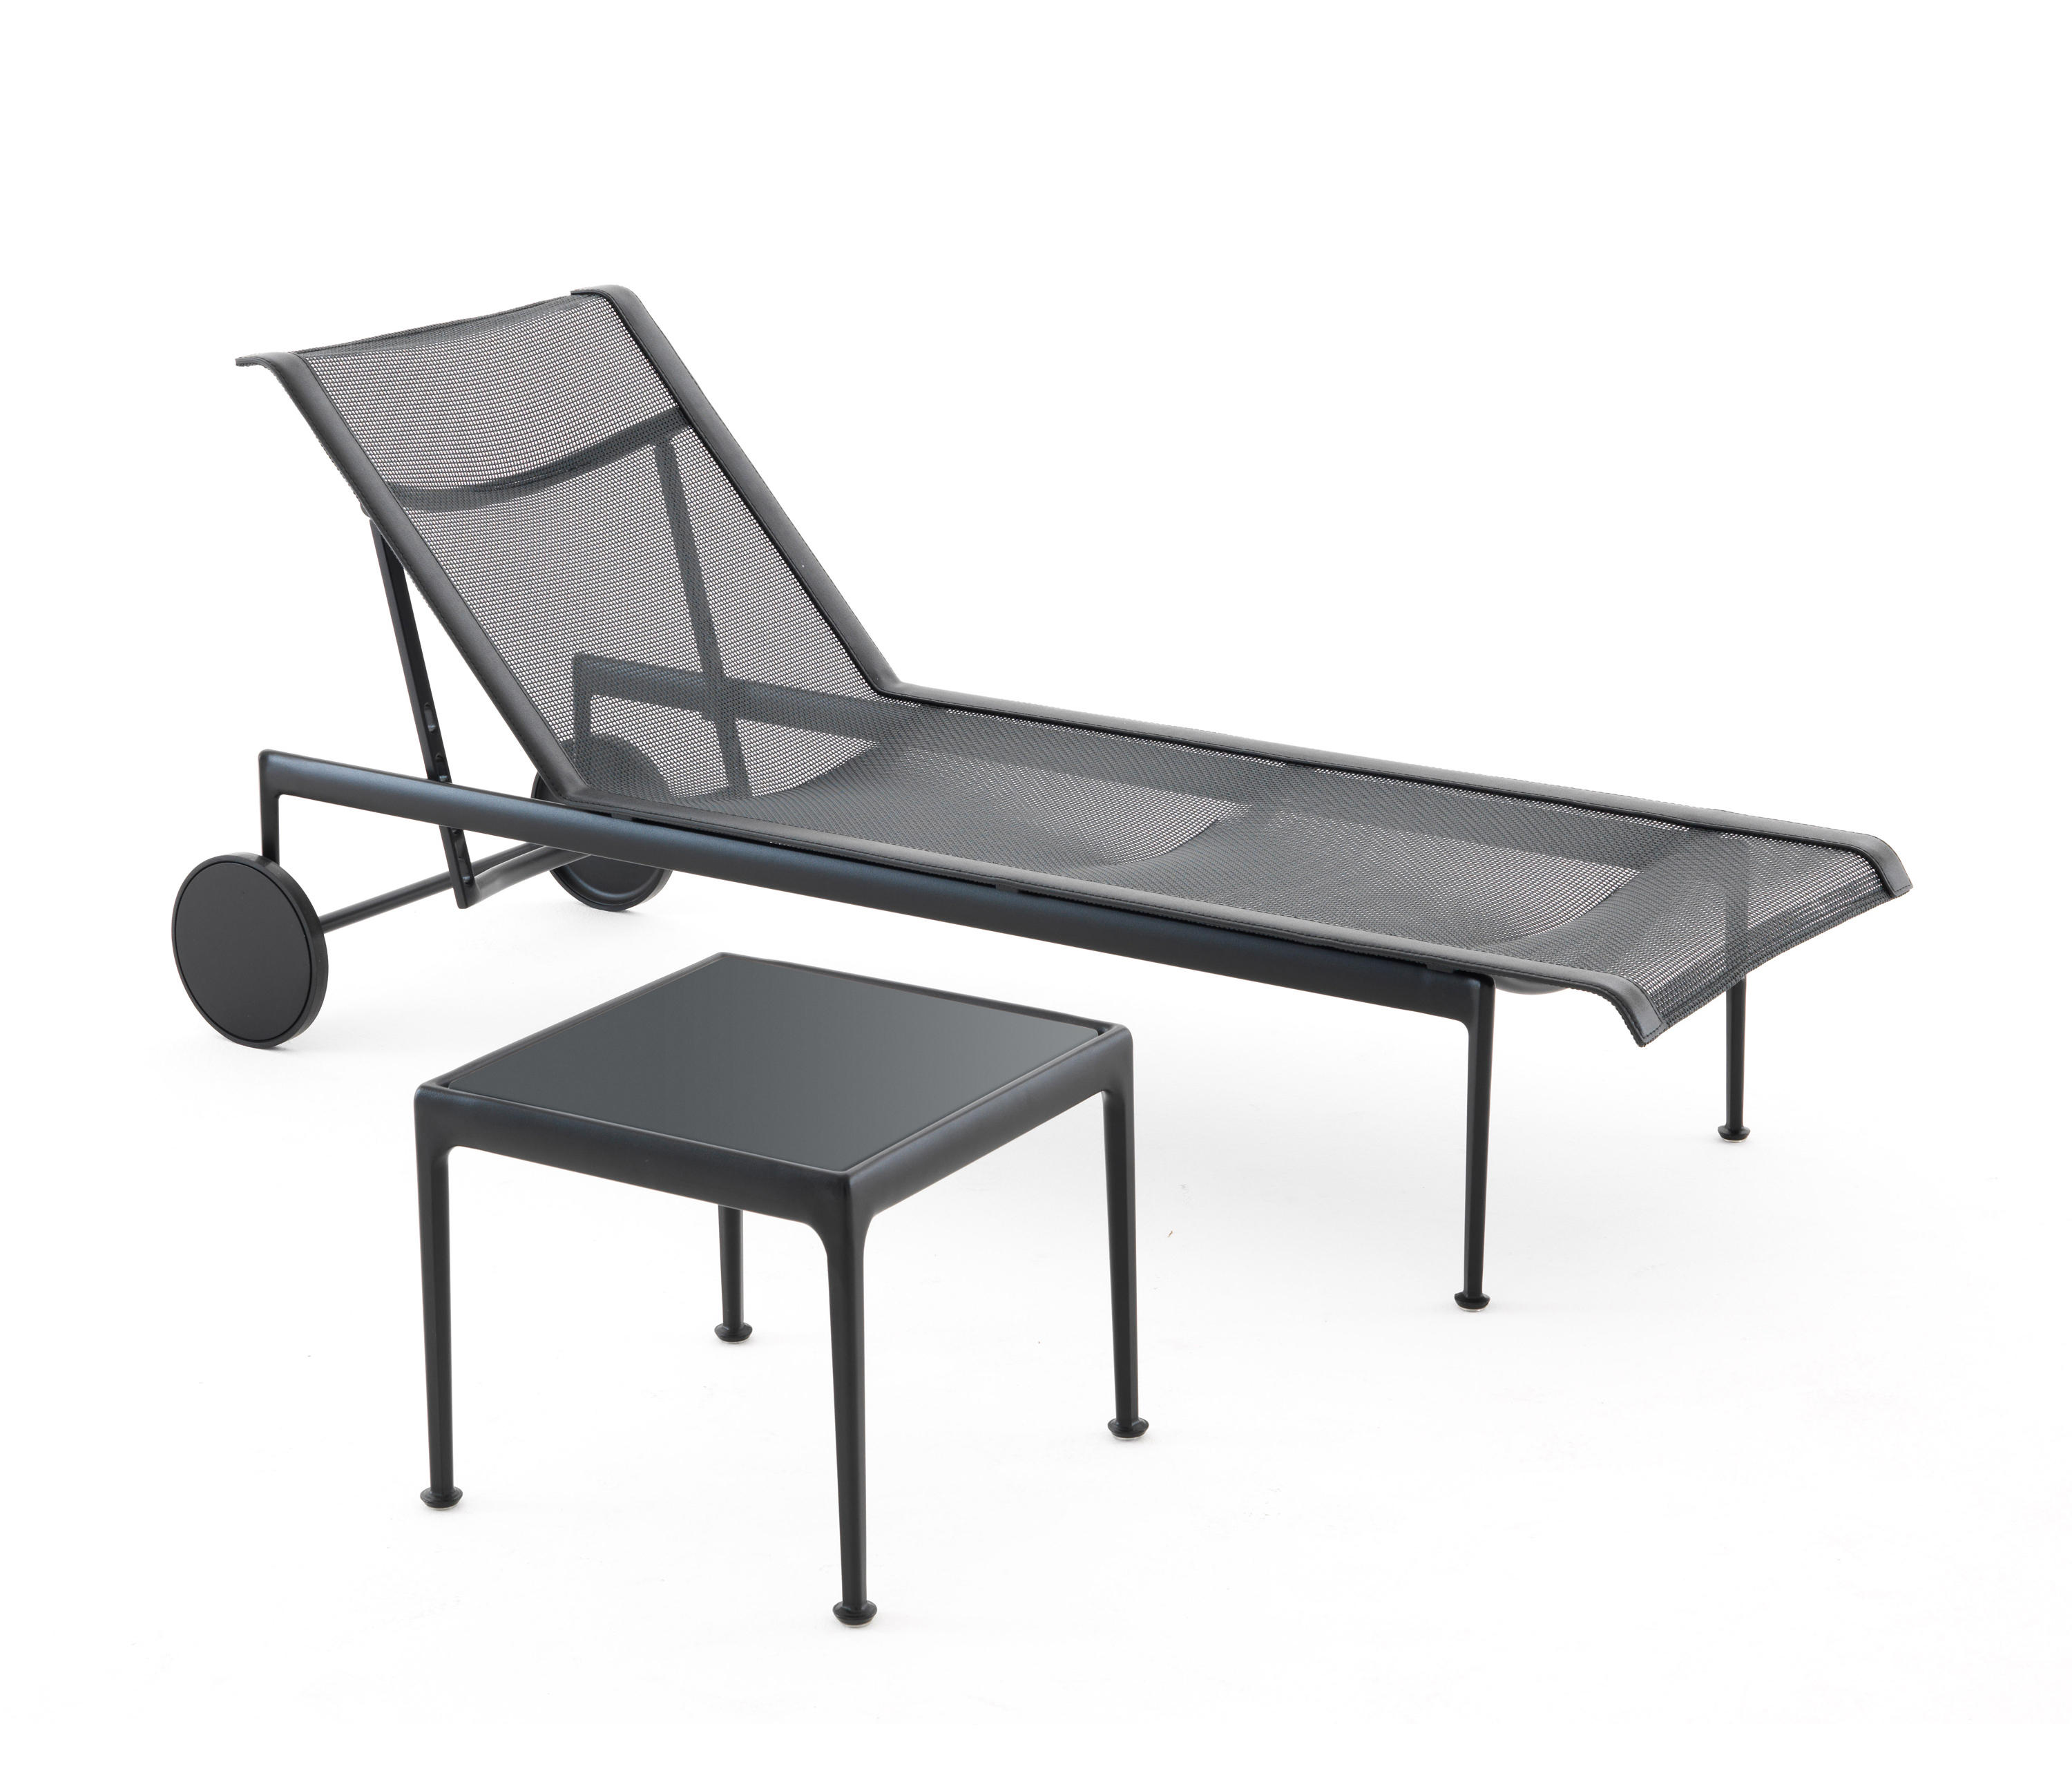 1966 adjustable chaise lounge black sun loungers from for Chaise lounge black